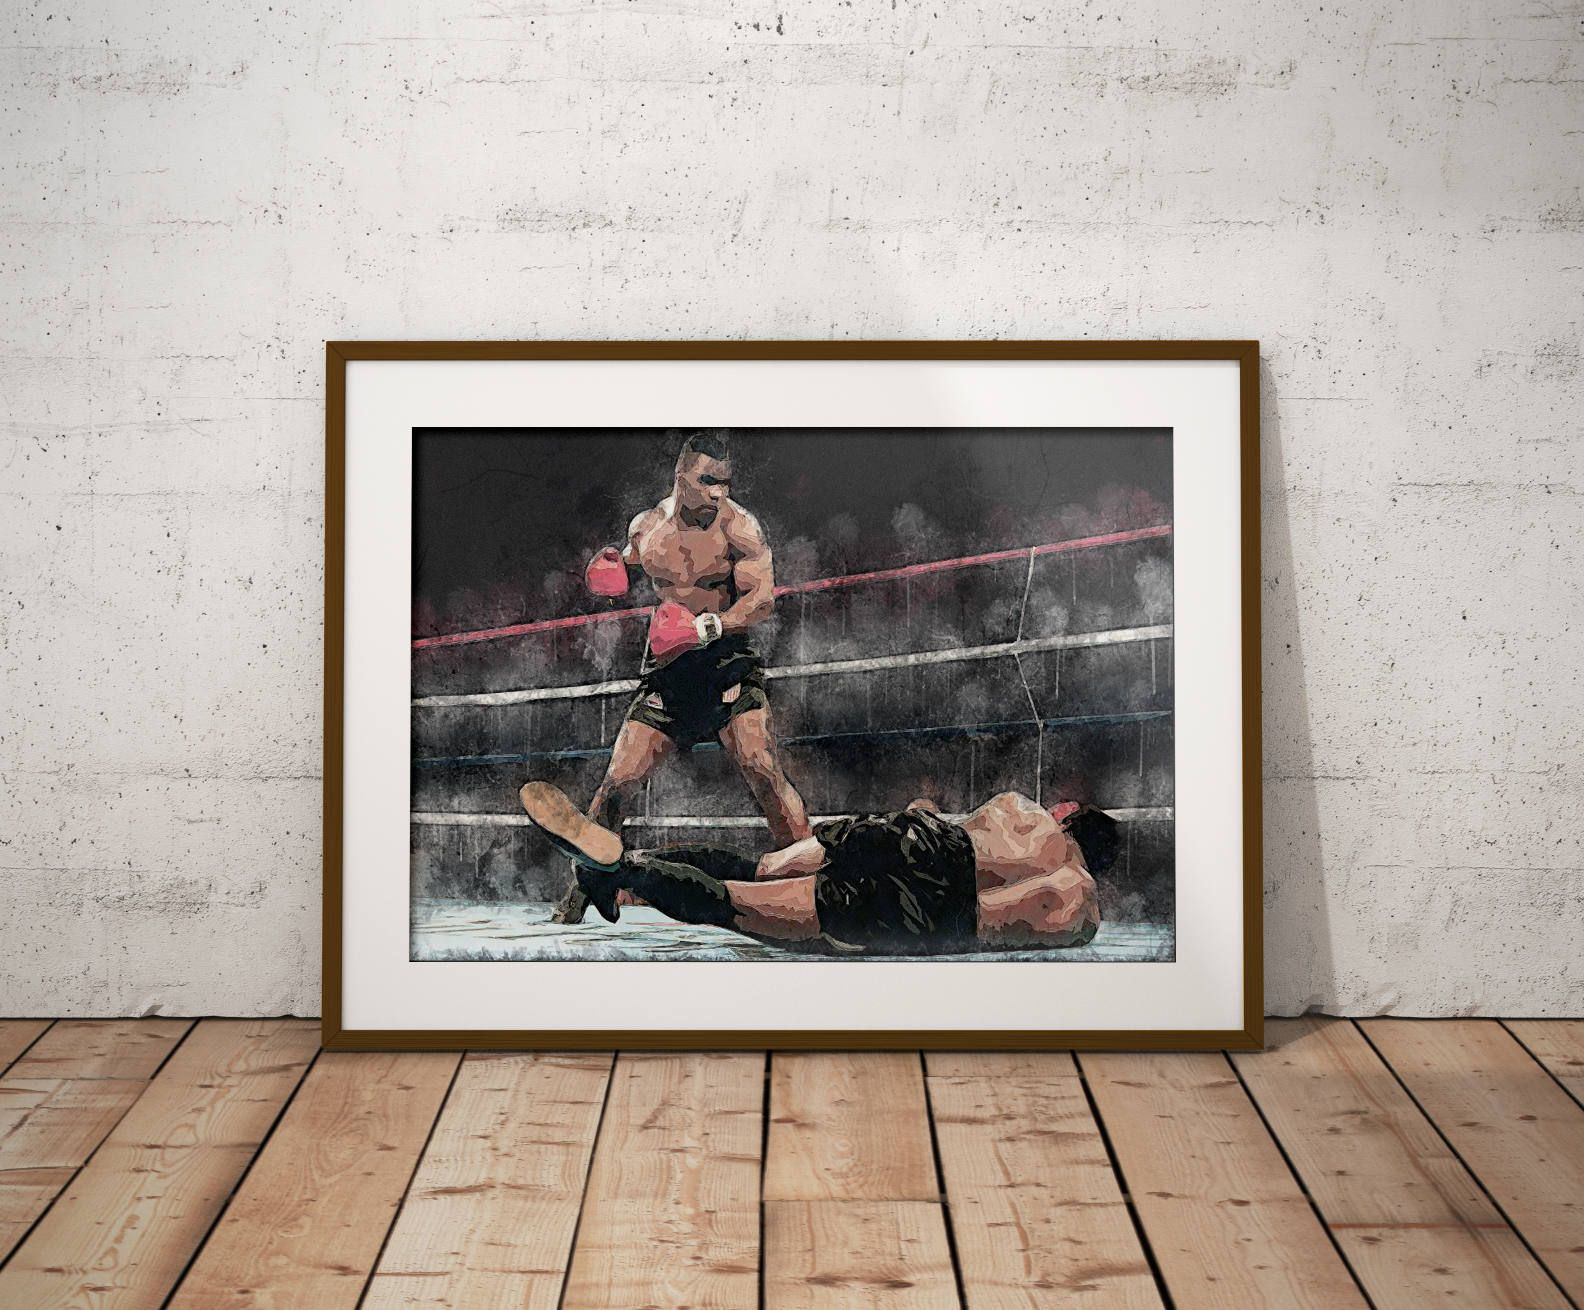 Mike Tyson Iron Mike Poster Boxing Art Boxing Poster Wall Decor Man Cave Boxing By Gamefacepp On Etsy Poster Wall Art Boxing Posters